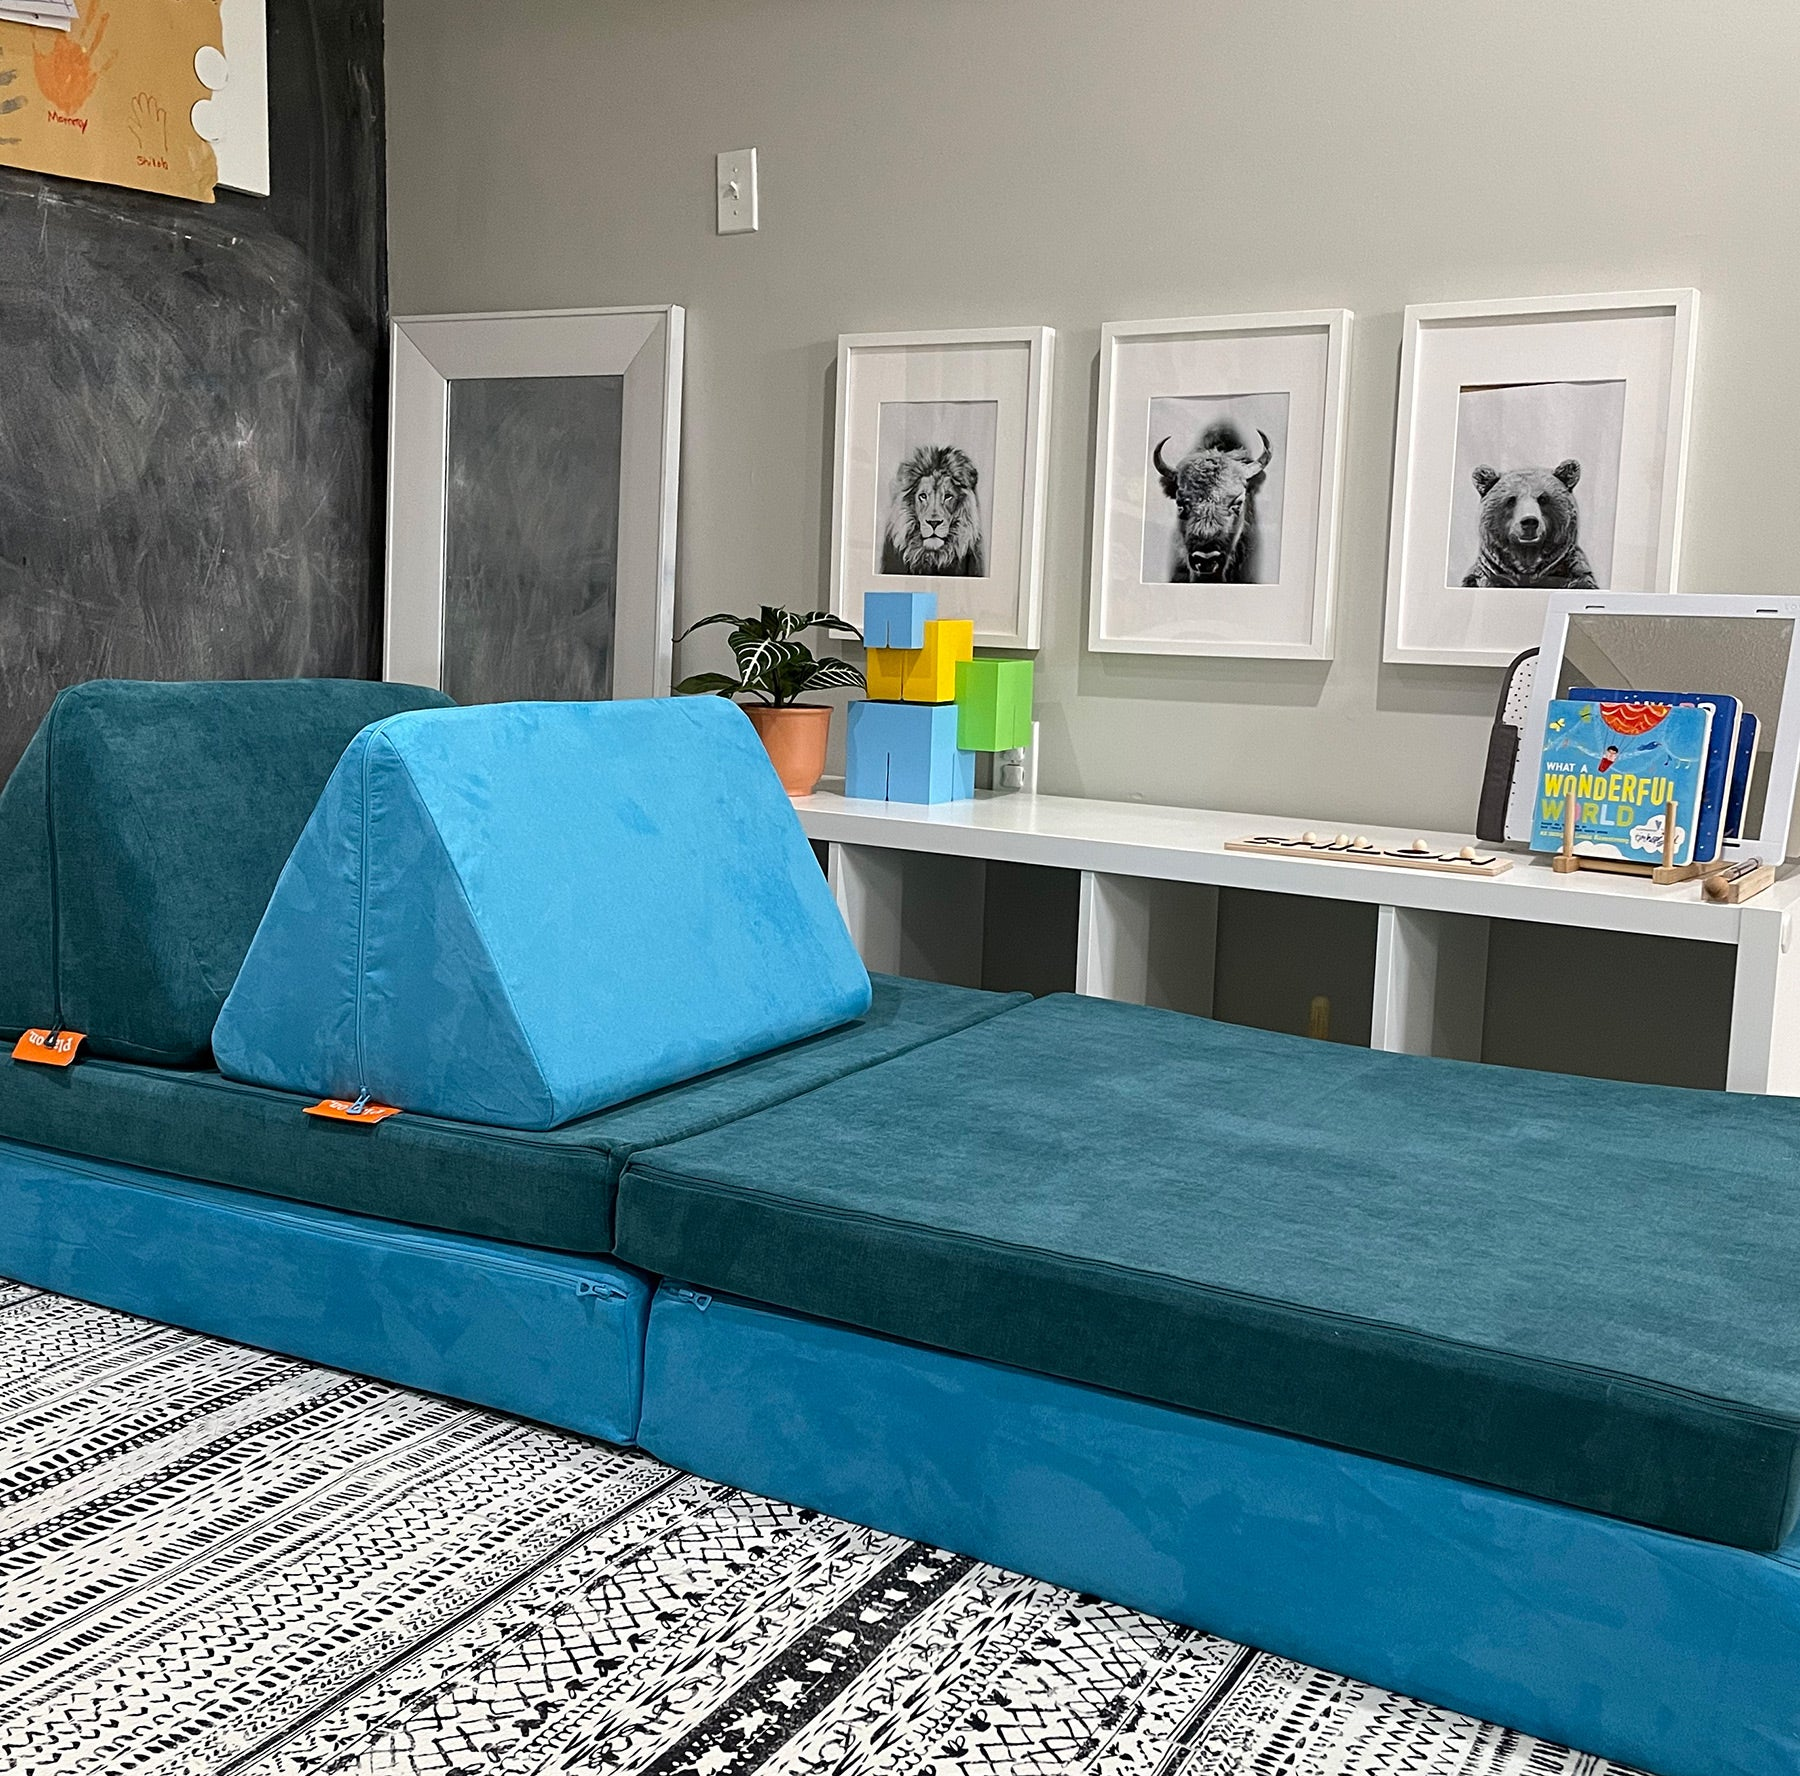 Nugget in a playroom made from two different colors: Snorkel, a popping, bright aquamarine, and Atlantis, a textured teal blue